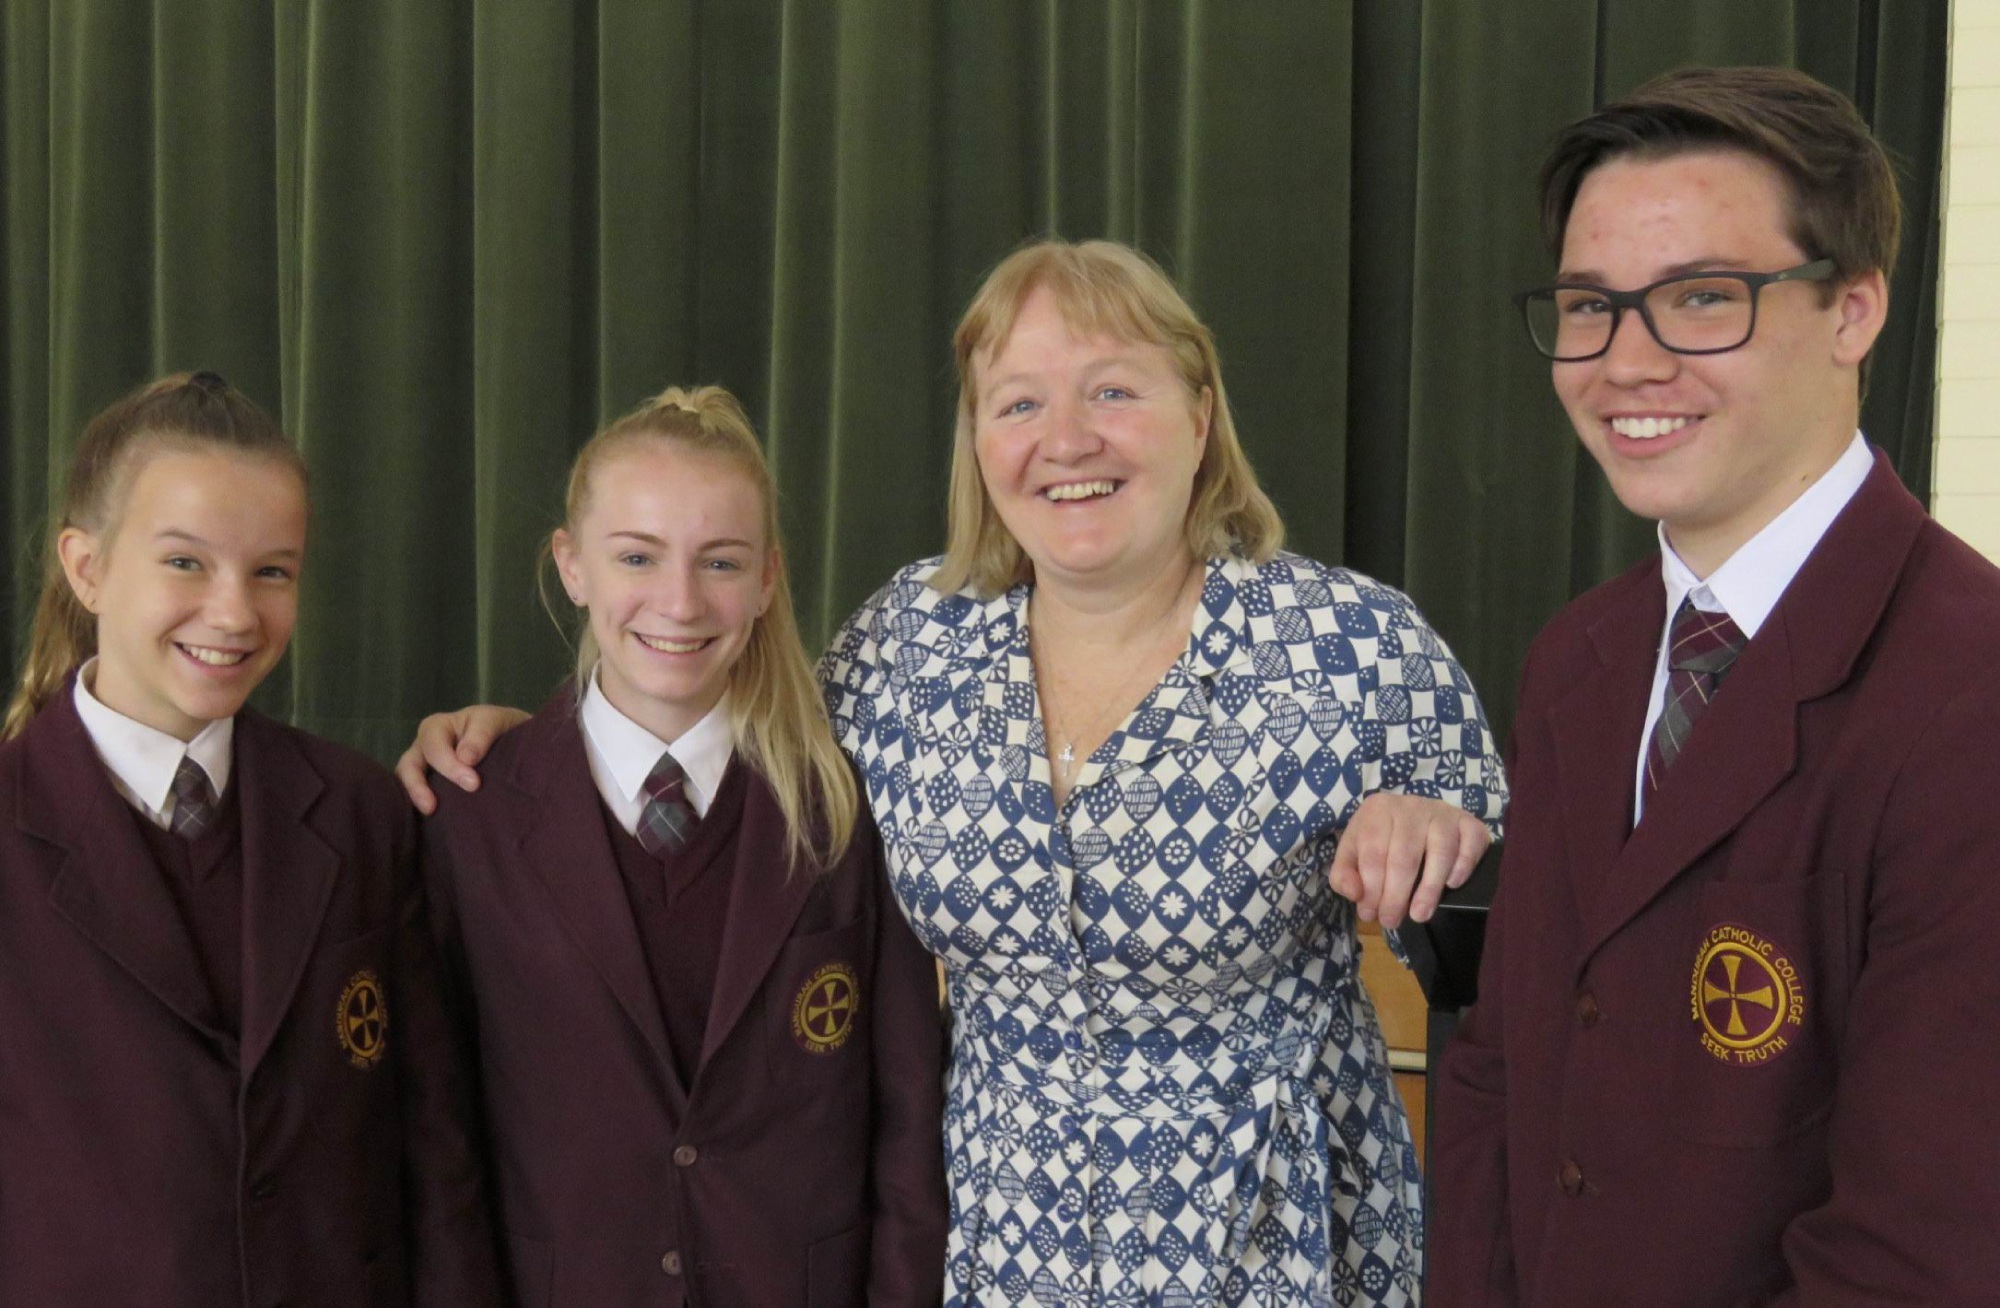 Charity worker Moira Kelly speaks to Mandurah Catholic College students